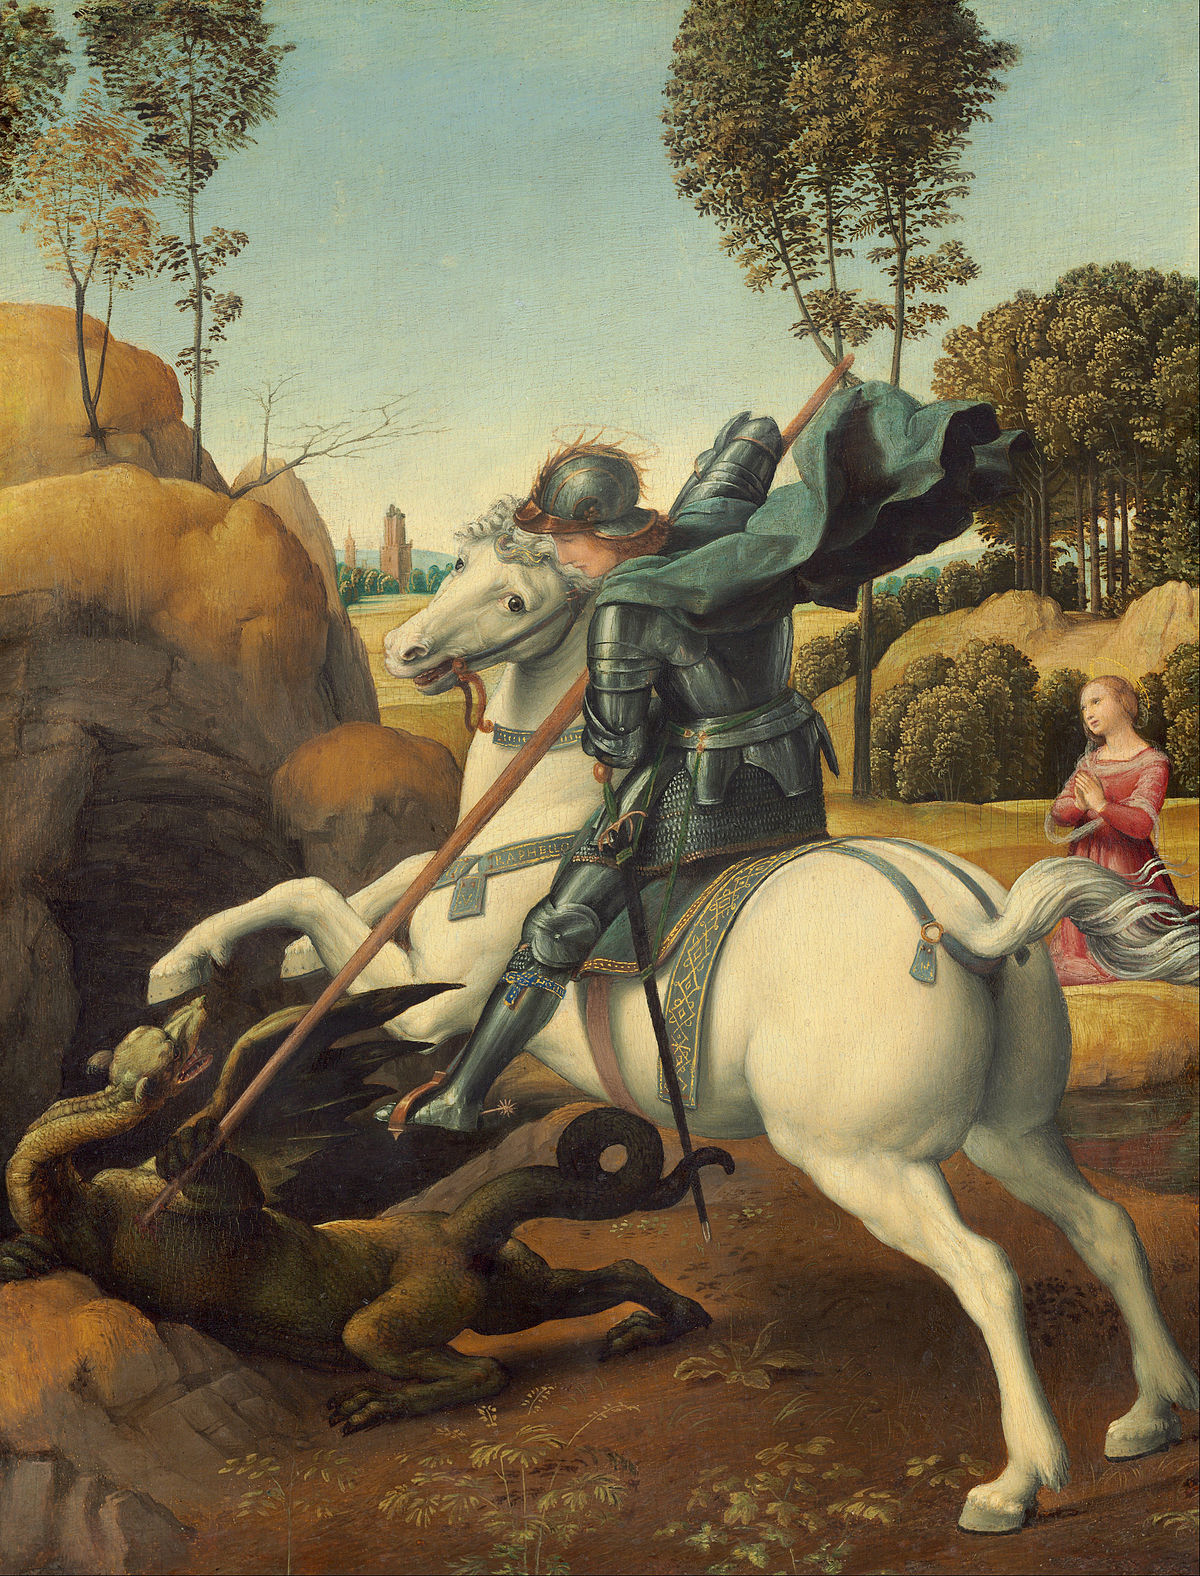 Raphael_-_Saint_George_and_the_Dragon_-_Google_Art_Project.jpg